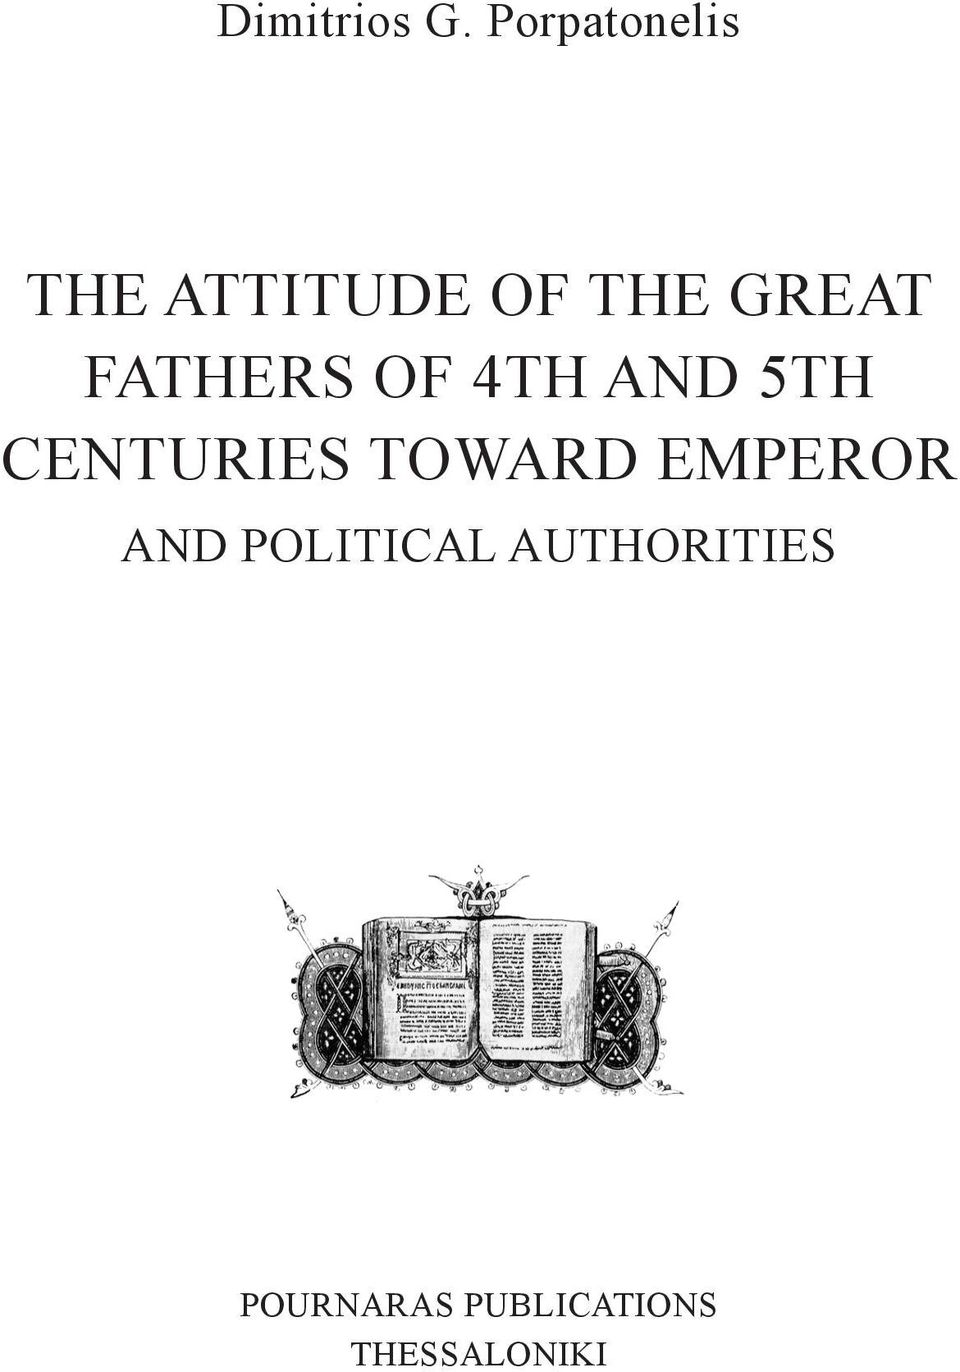 FATHERS OF 4TH AND 5TH CENTURIES TOWARD